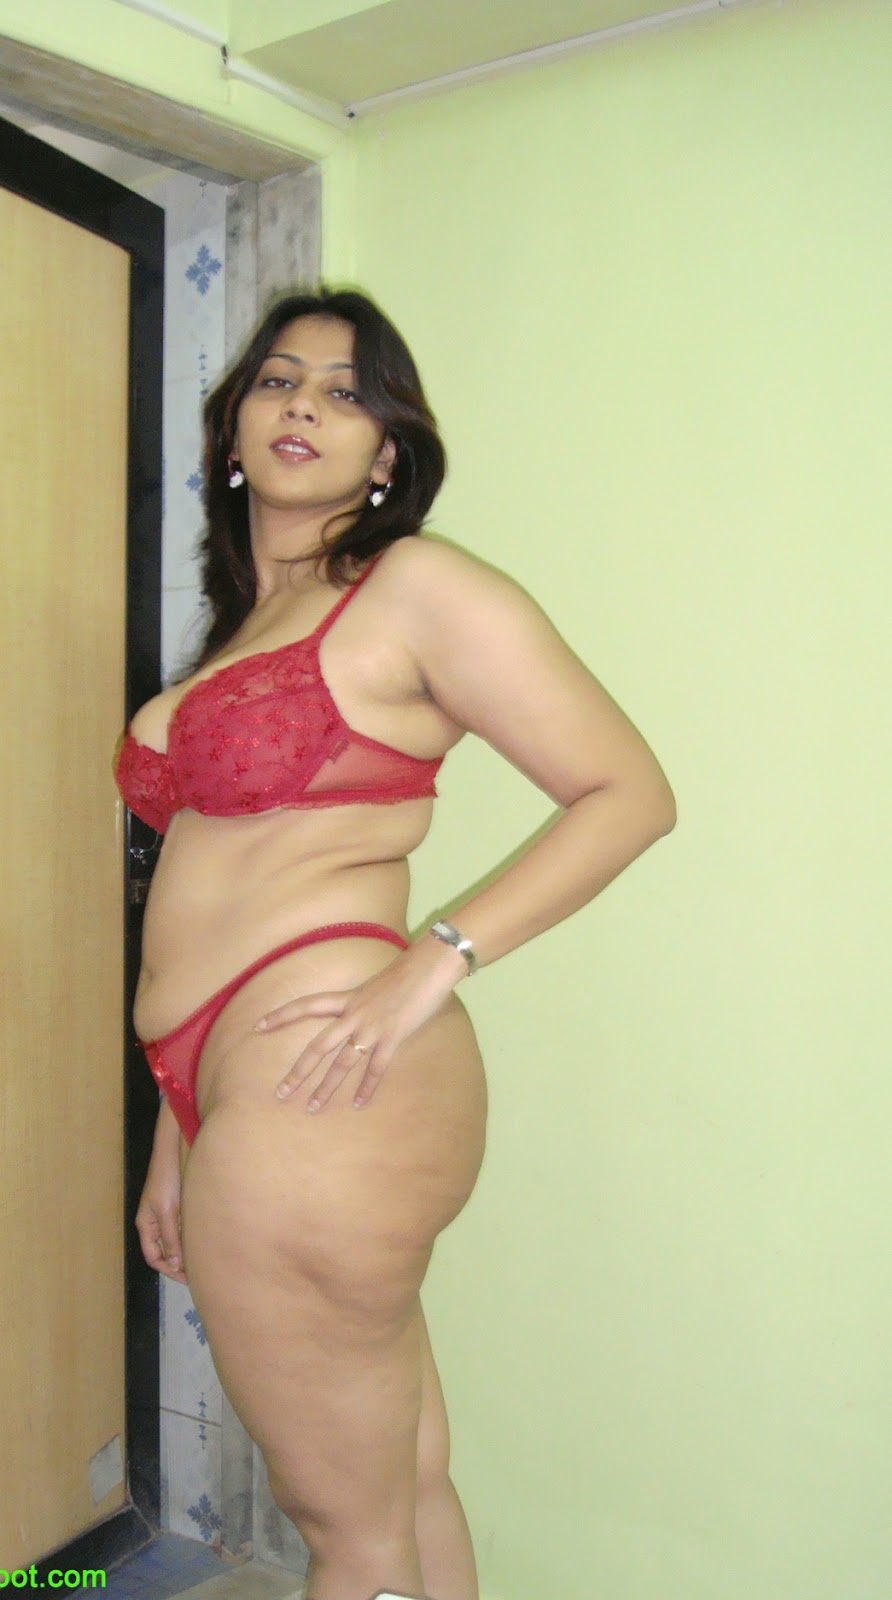 andhamina bhamalu : big ass 36-24-38